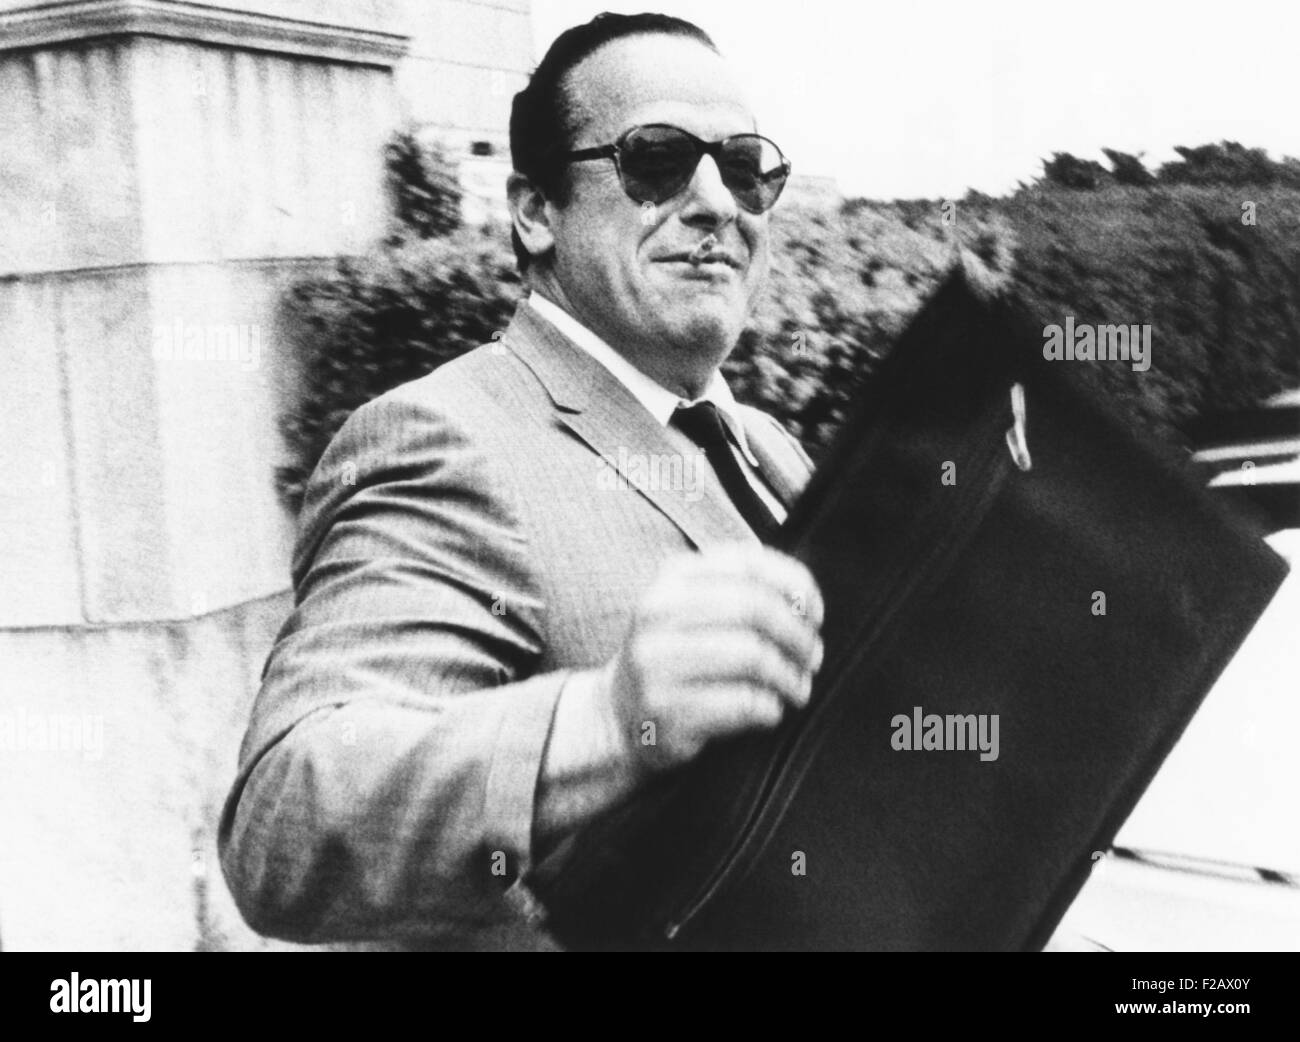 Anthony (Tony Dale) Agnellino, alleged Mafia figure from Long Branch, New Jersey. July 10, 1969. He tried to cover - Stock Image